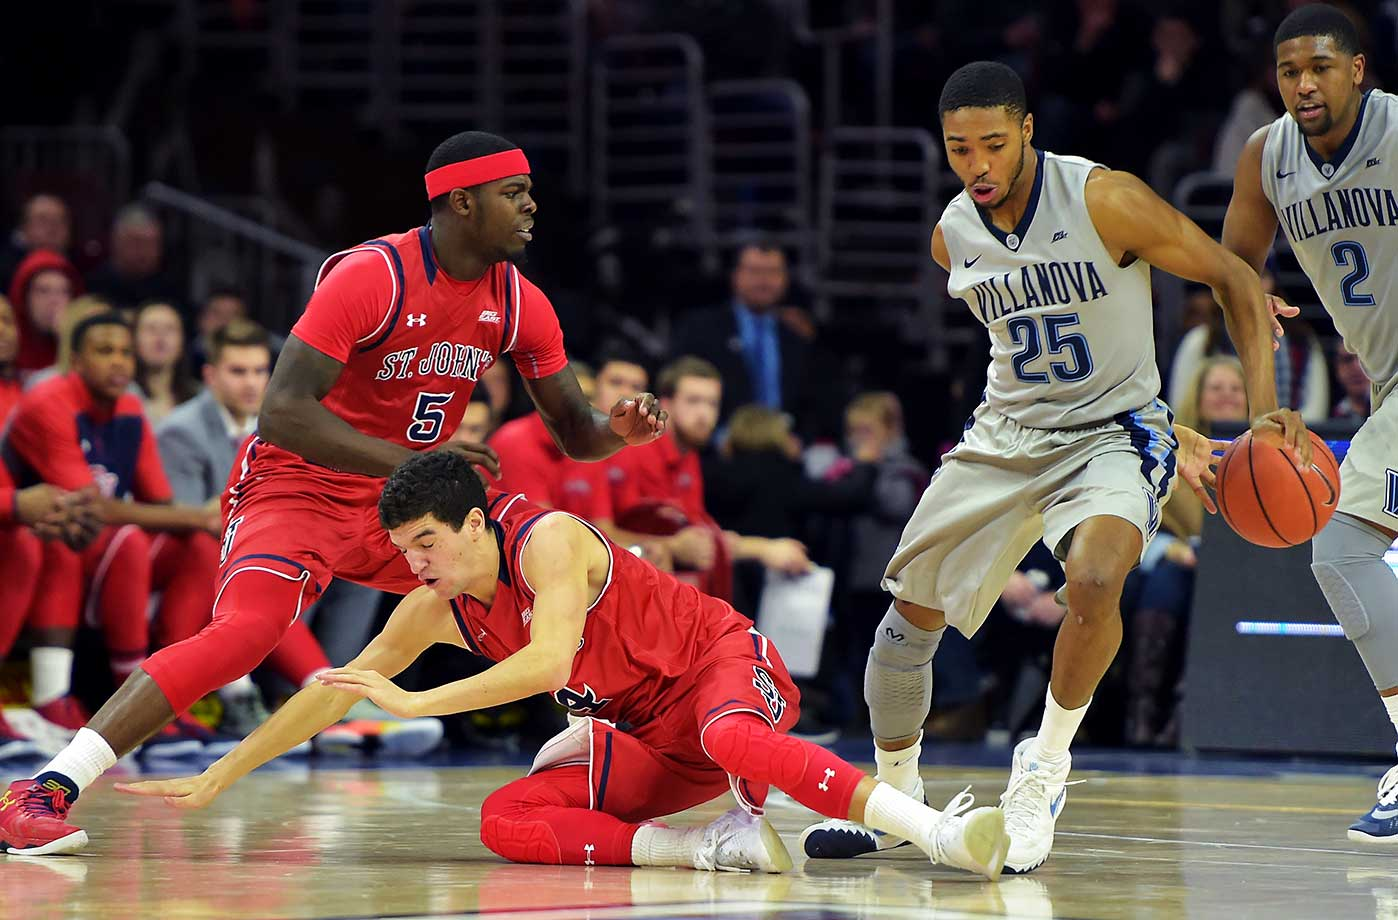 Mikal Bridges of the Villanova Wildcats crosses a fallen Federico Mussini of the St. John's Red Storm.